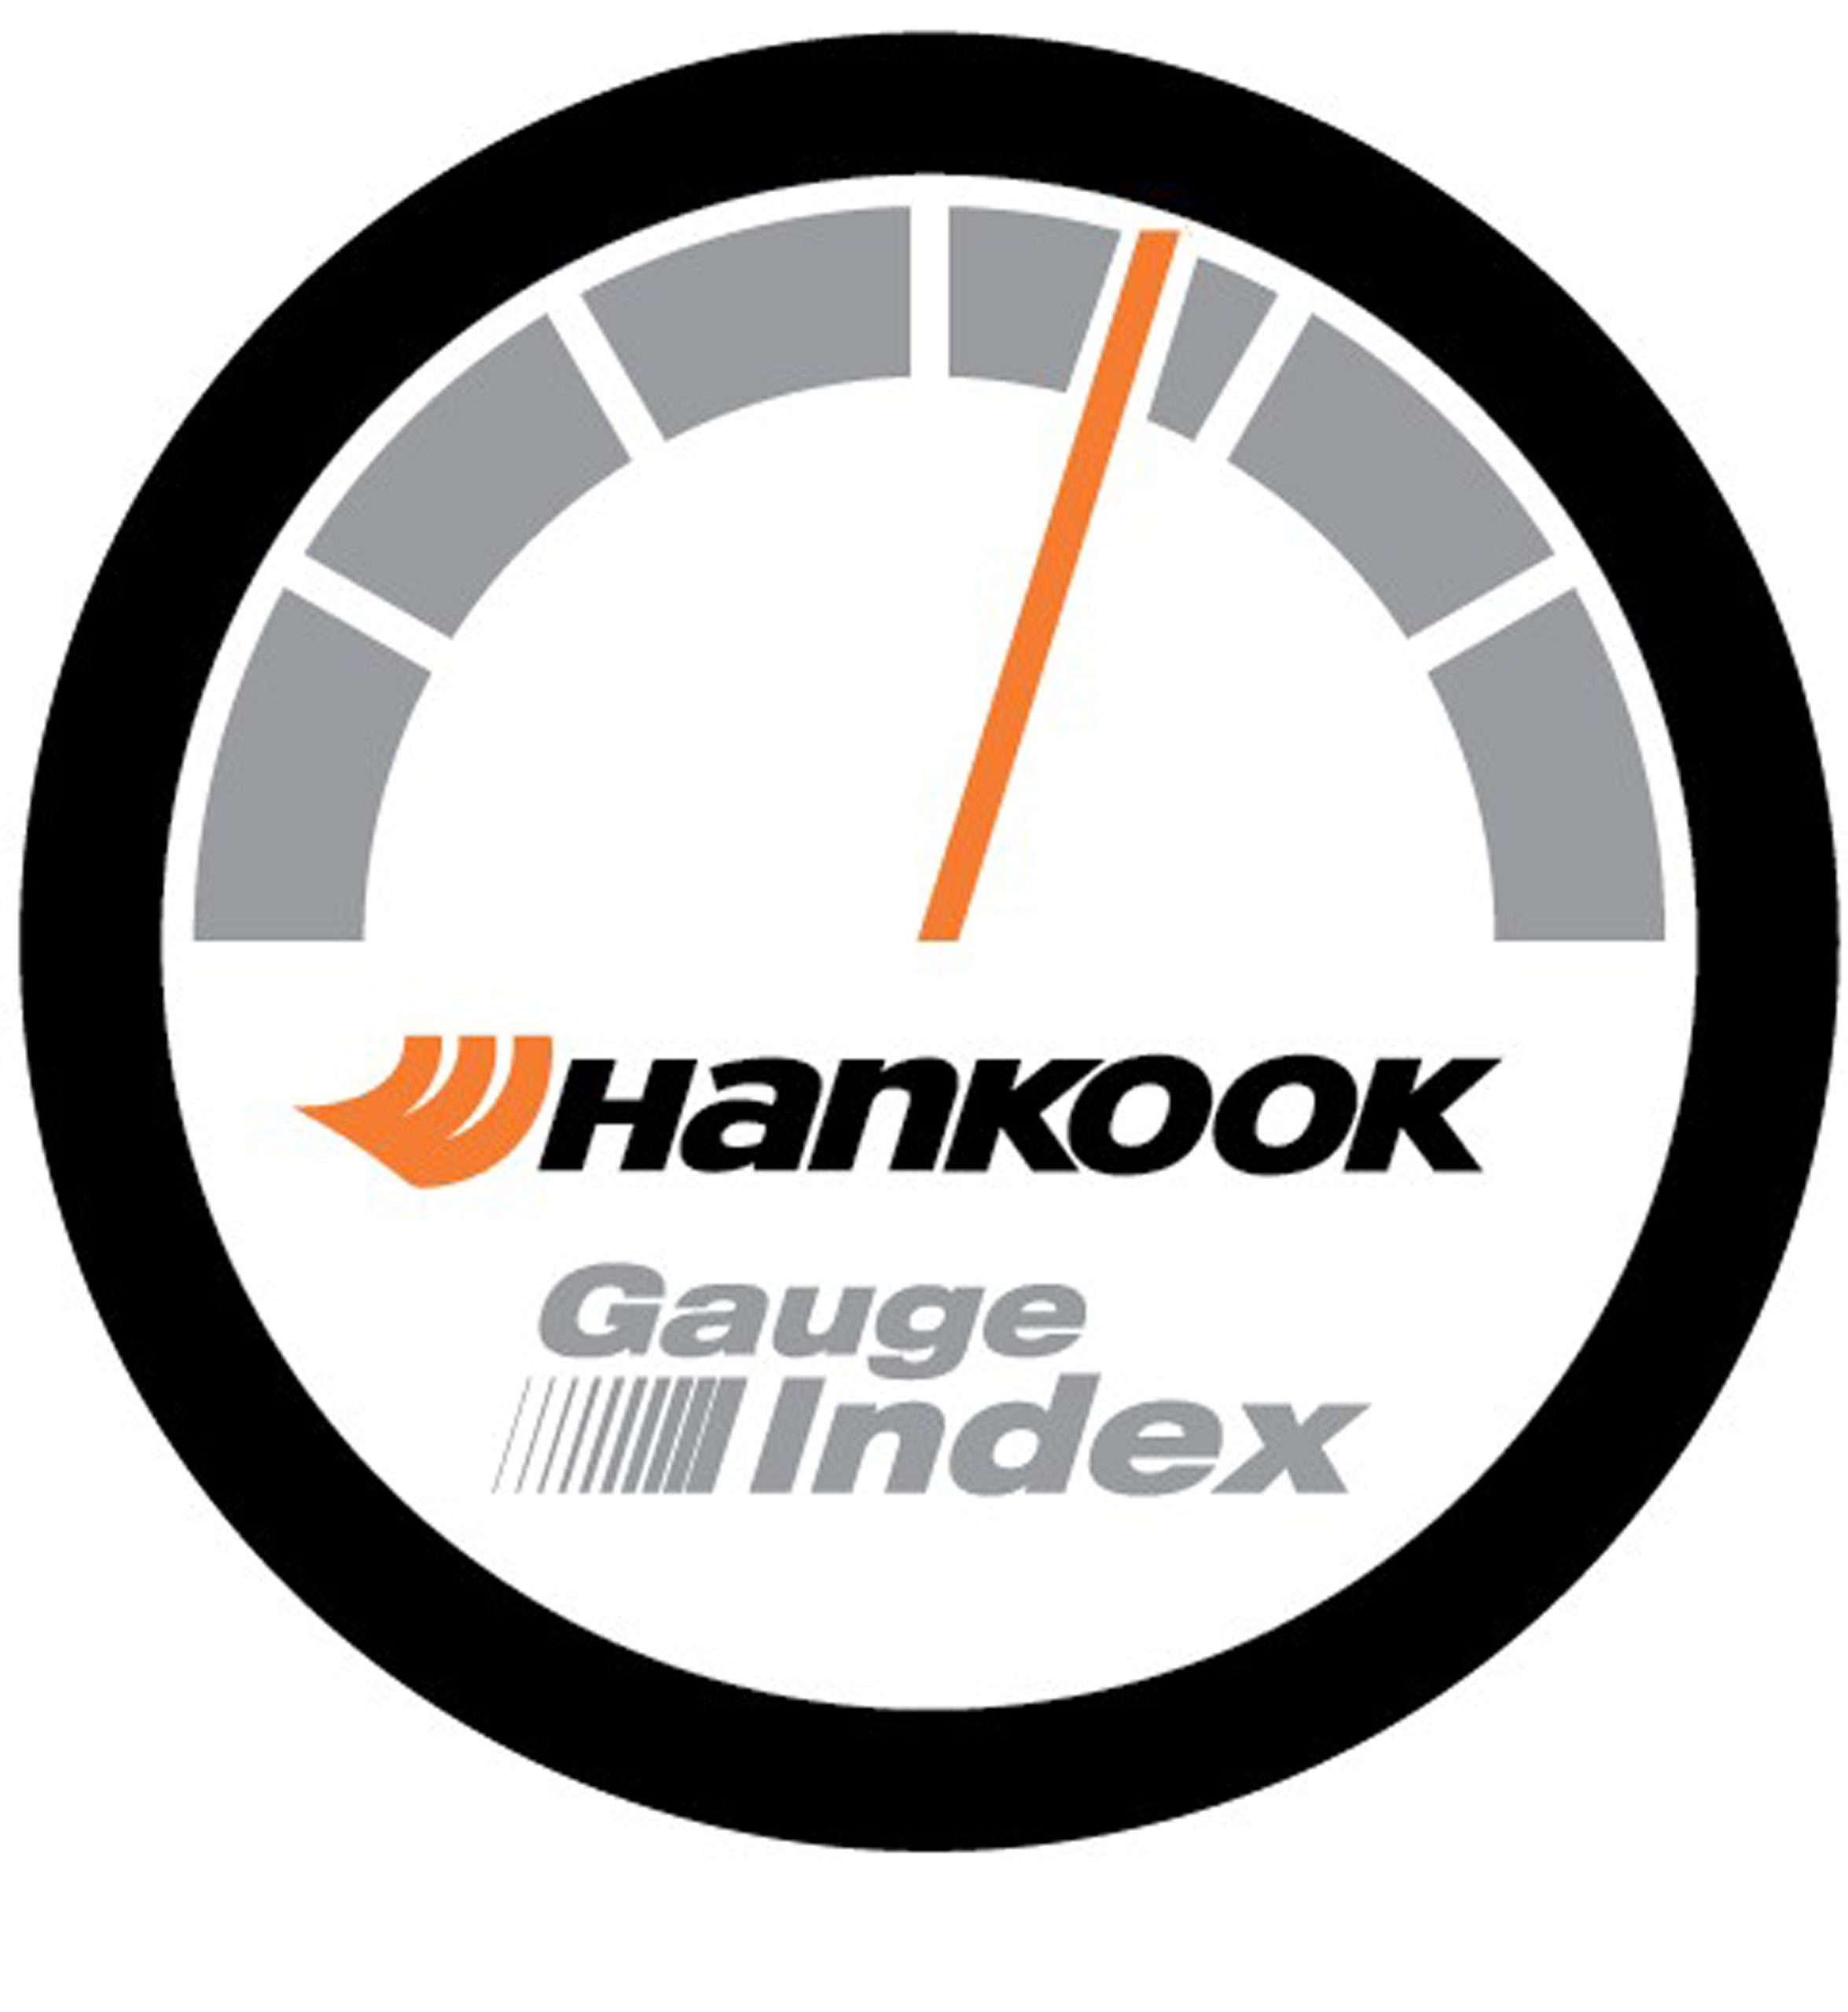 Hankook Tire Gauge Index